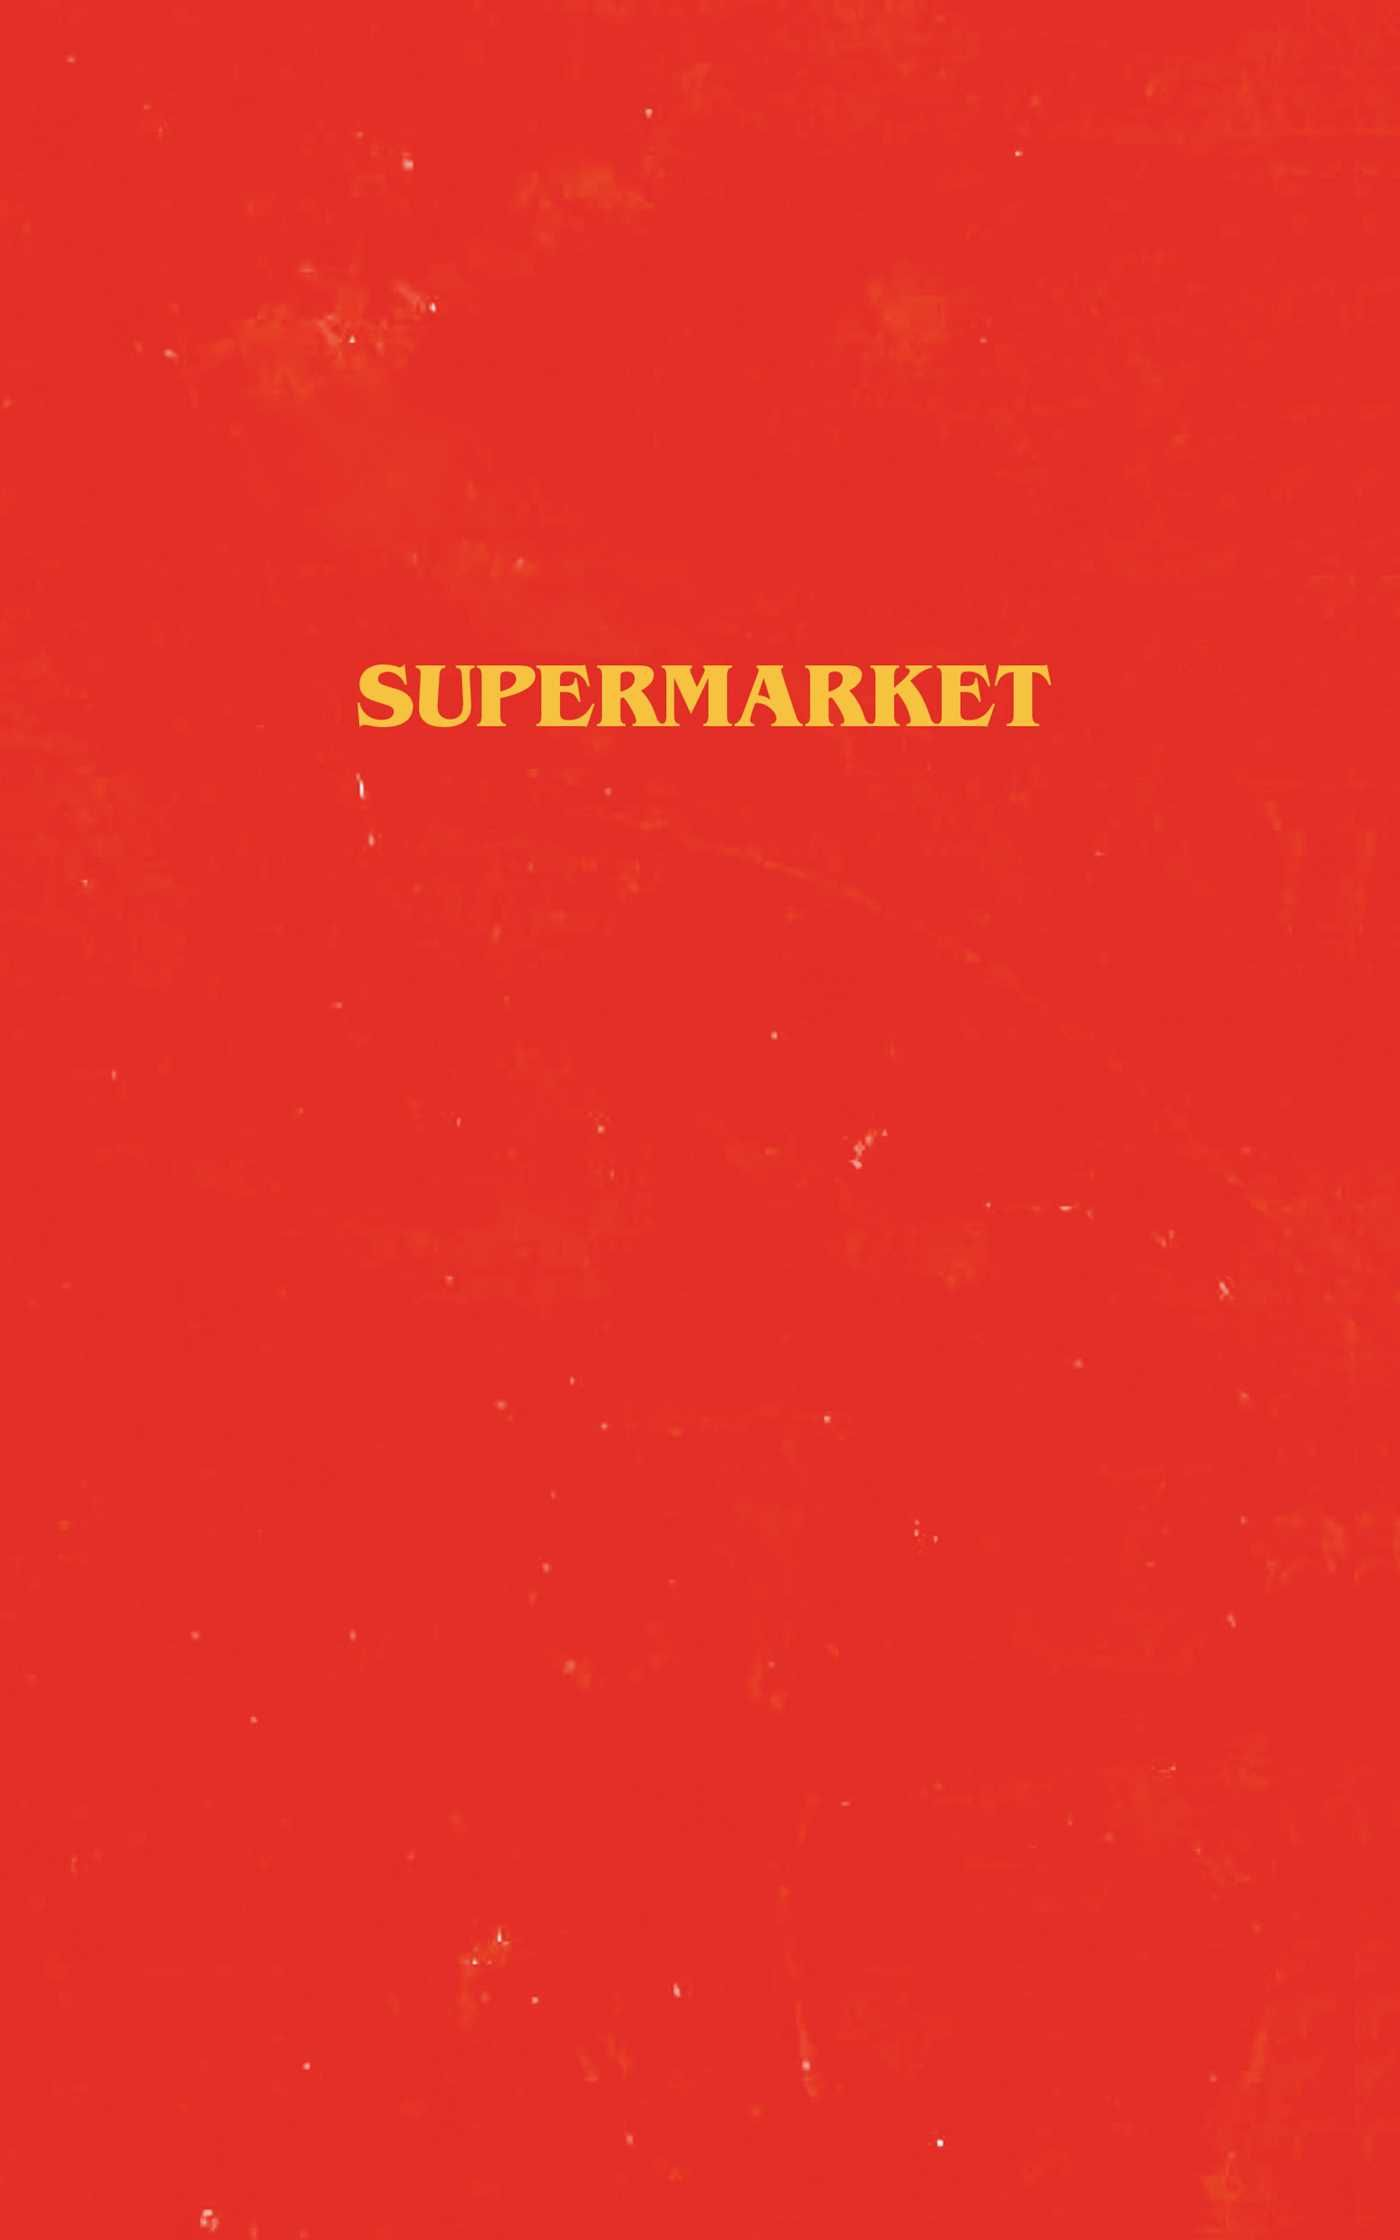 "Supermarket by bobby hall - The stunning debut novel from one of the most creative artists of our generation, Bobby Hall, a.k.a. Logic.""Bobby Hall has crafted a mind-bending first novel, with prose that is just as fierce and moving as his lyrics. Supermarket is like Naked Lunch meets One Flew Over the Cuckoo's Nest—if they met at Fight Club.""—Ernest Cline, #1 New York Times Bestselling author of Ready Player OneFlynn is stuck—depressed, recently dumped, and living at his mom's house. The supermarket was supposed to change all that. An ordinary job and a steady check. Work isn't work when it's saving you from yourself. But things aren't quite as they seem in these aisles. Arriving to work one day to a crime scene, Flynn's world collapses as the secrets of his tortured mind are revealed. And Flynn doesn't want to go looking for answers at the supermarket. Because something there seems to be looking for him. A darkly funny psychological thriller, Supermarket is a gripping exploration into madness and creativity. Who knew you could find sex, drugs, and murder all in aisle nine?"